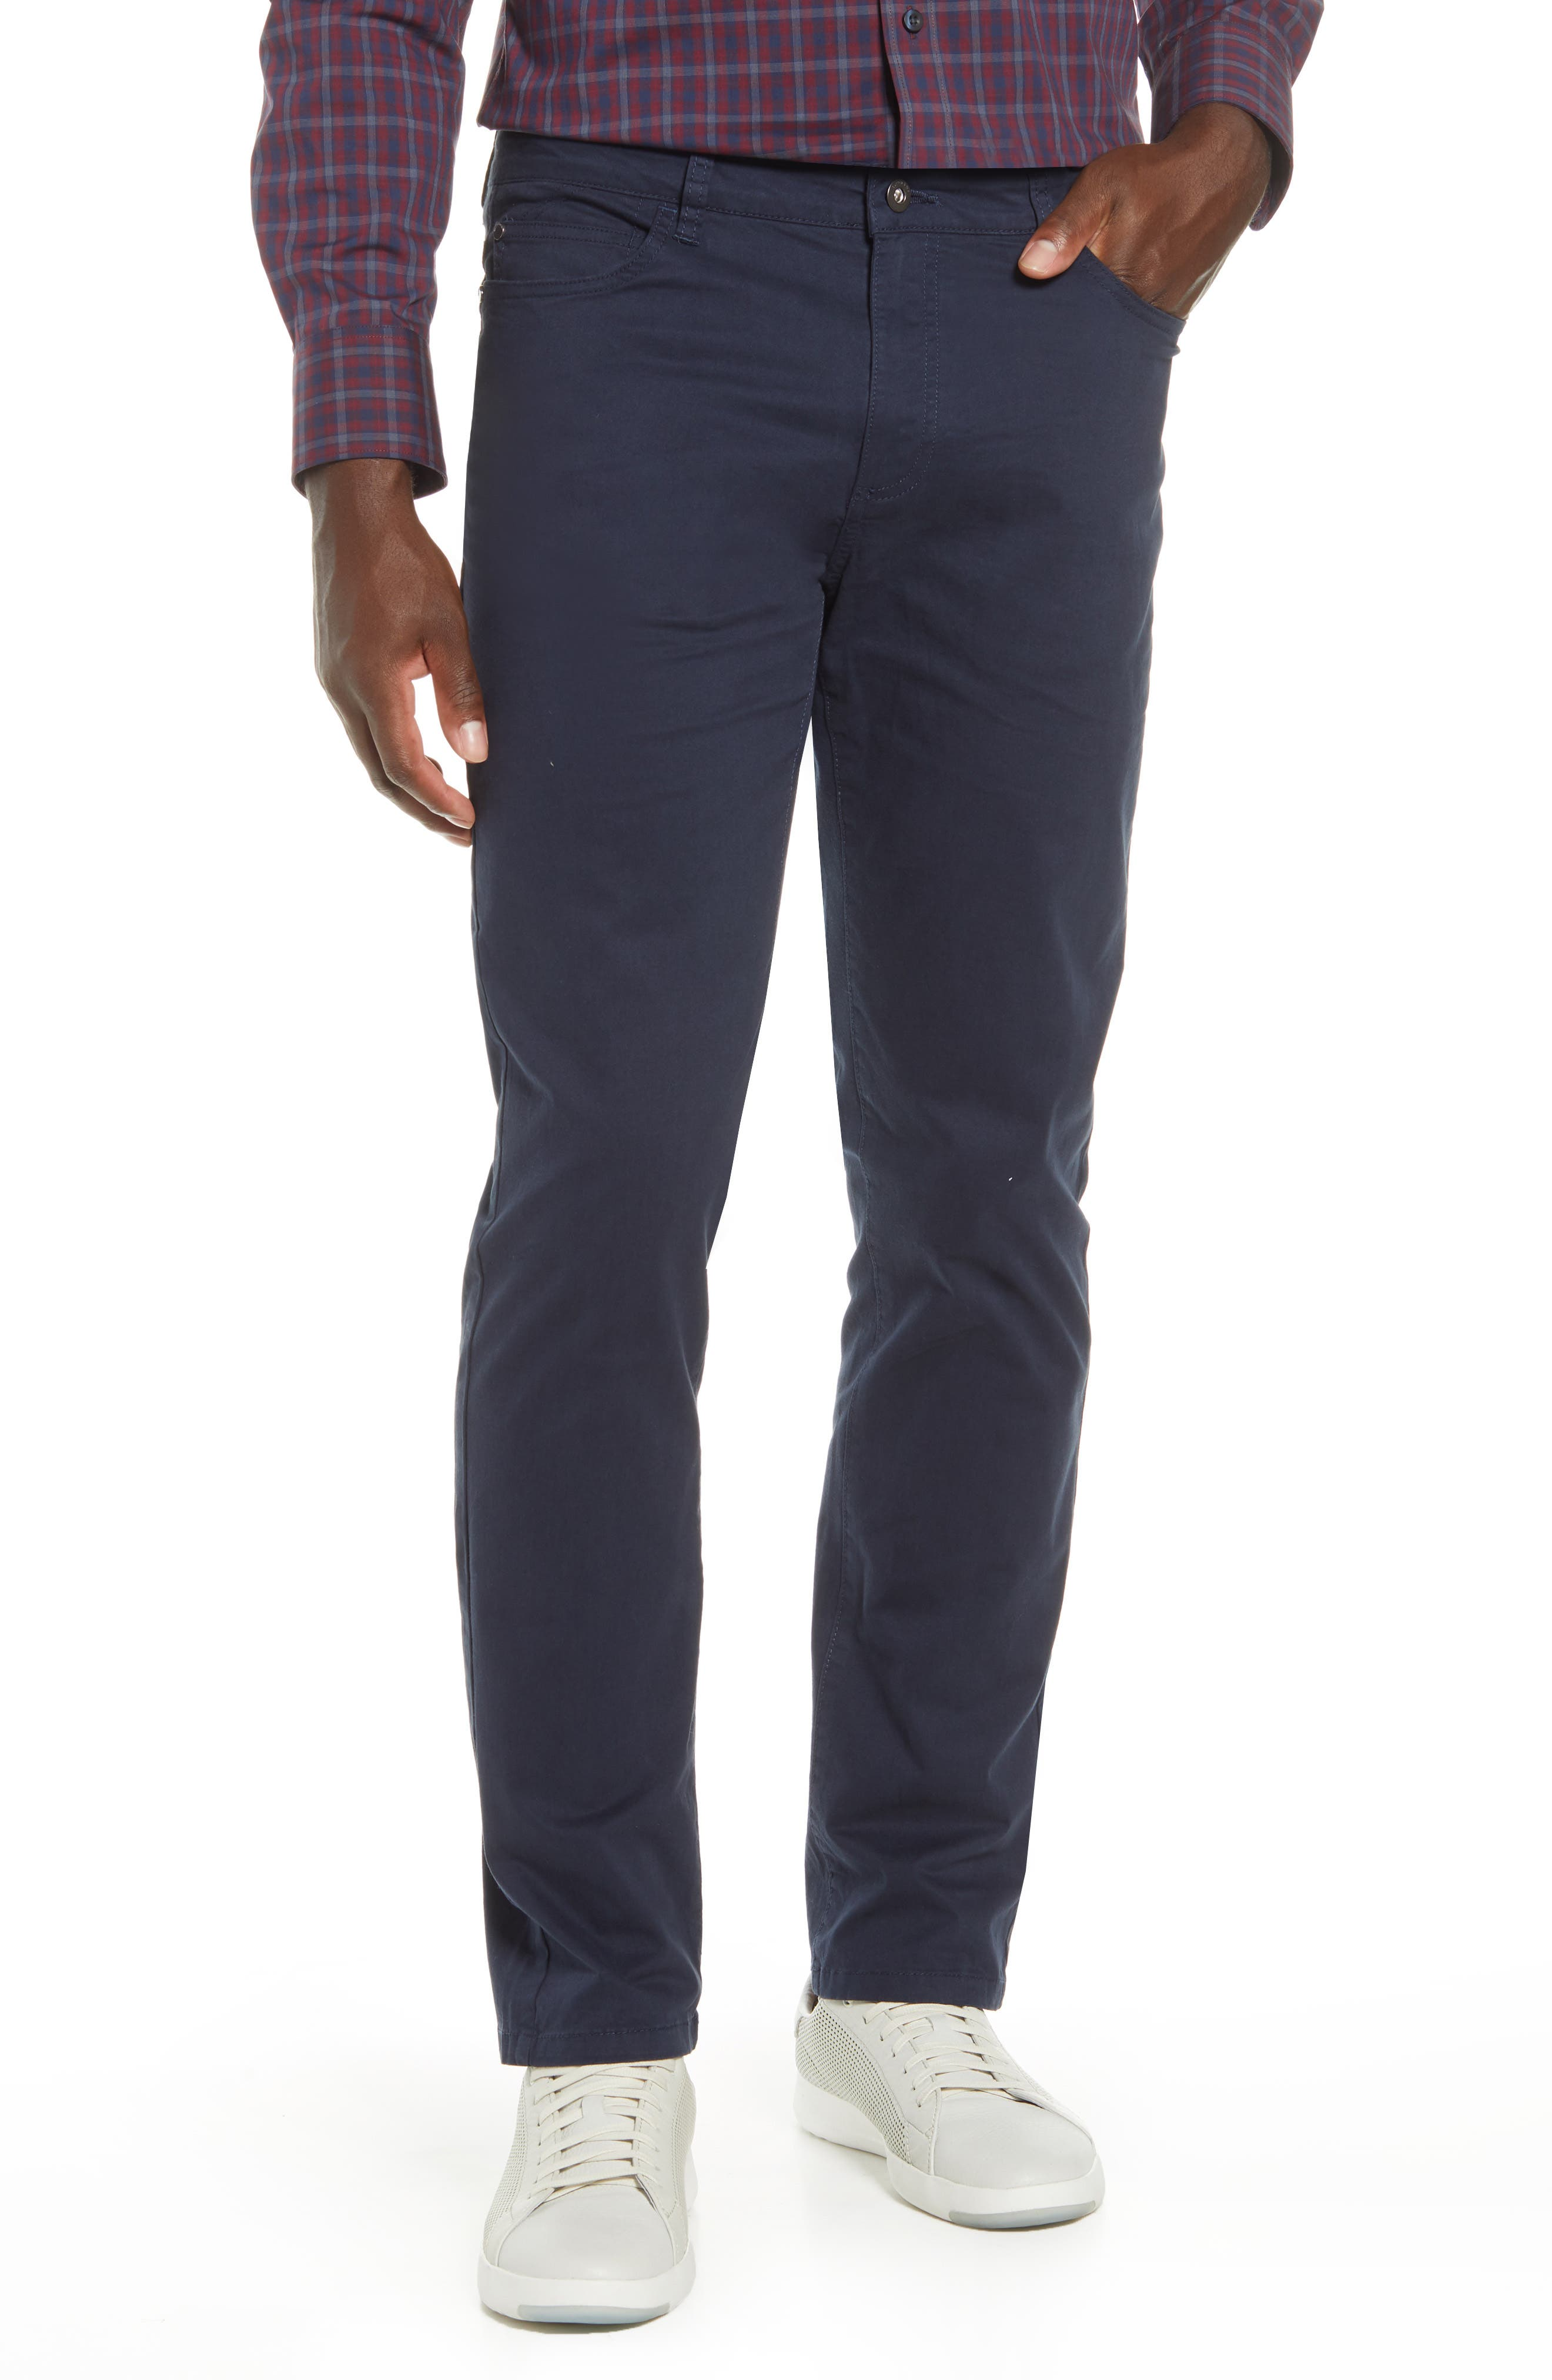 Garment-washed stretch cotton means a flexible feel in versatile pants with casual appeal. Style Name: Cutter & Buck Voyager Stretch Cotton Five-Pocket Pants. Style Number: 6054936. Available in stores.